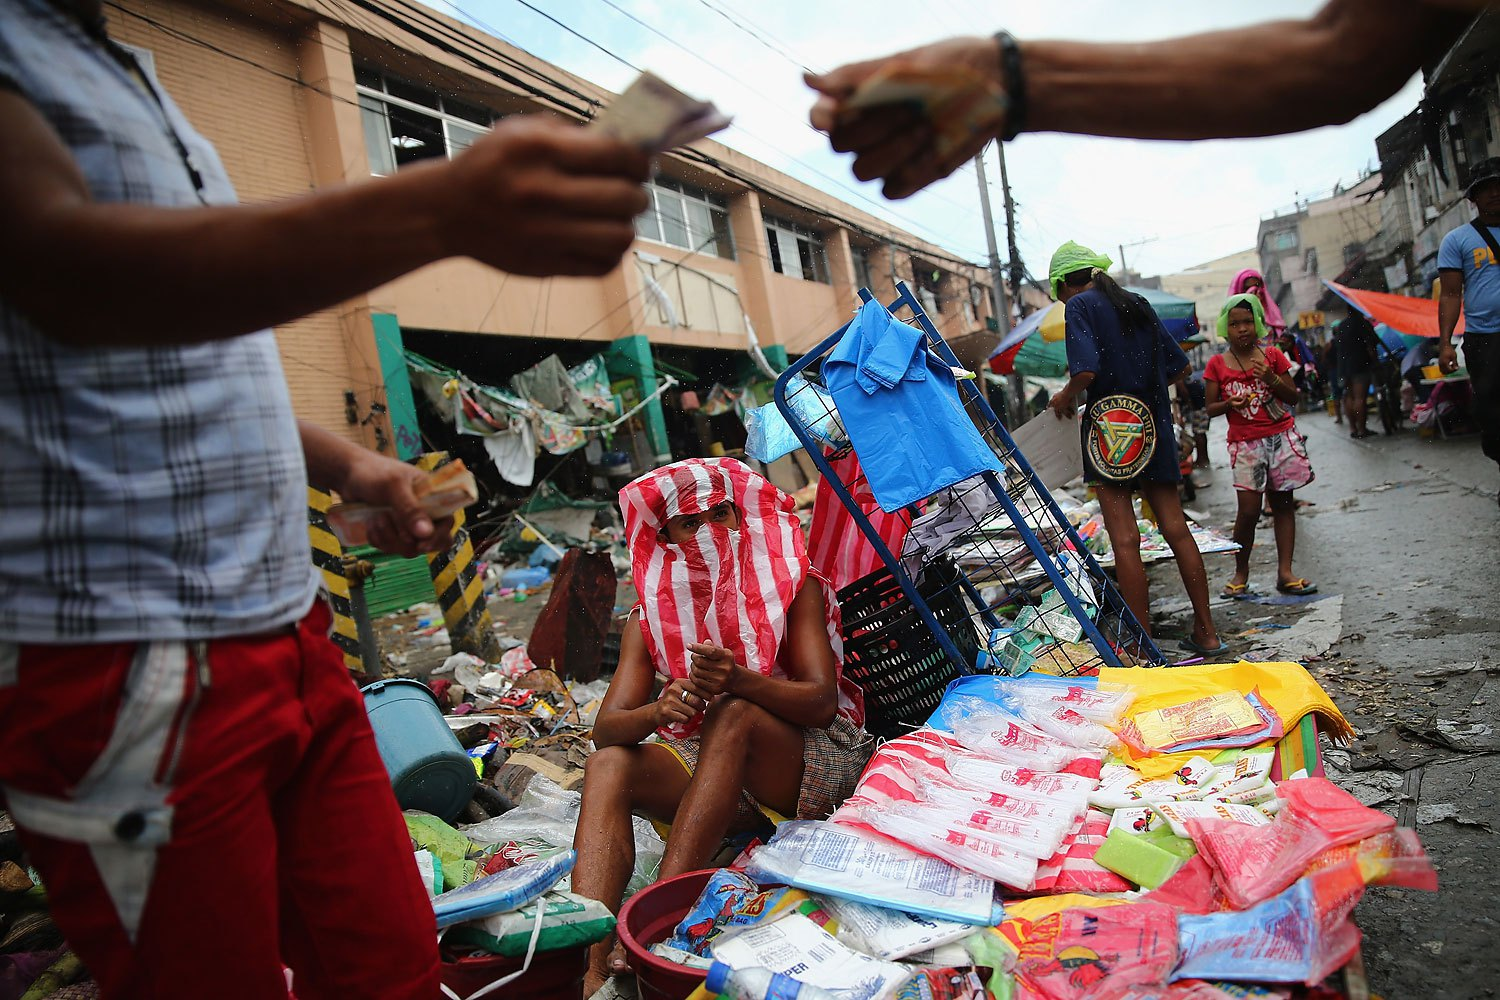 Market stall holders trade goods in Tacloban on November 19, 2013 in Leyte, Philippines.